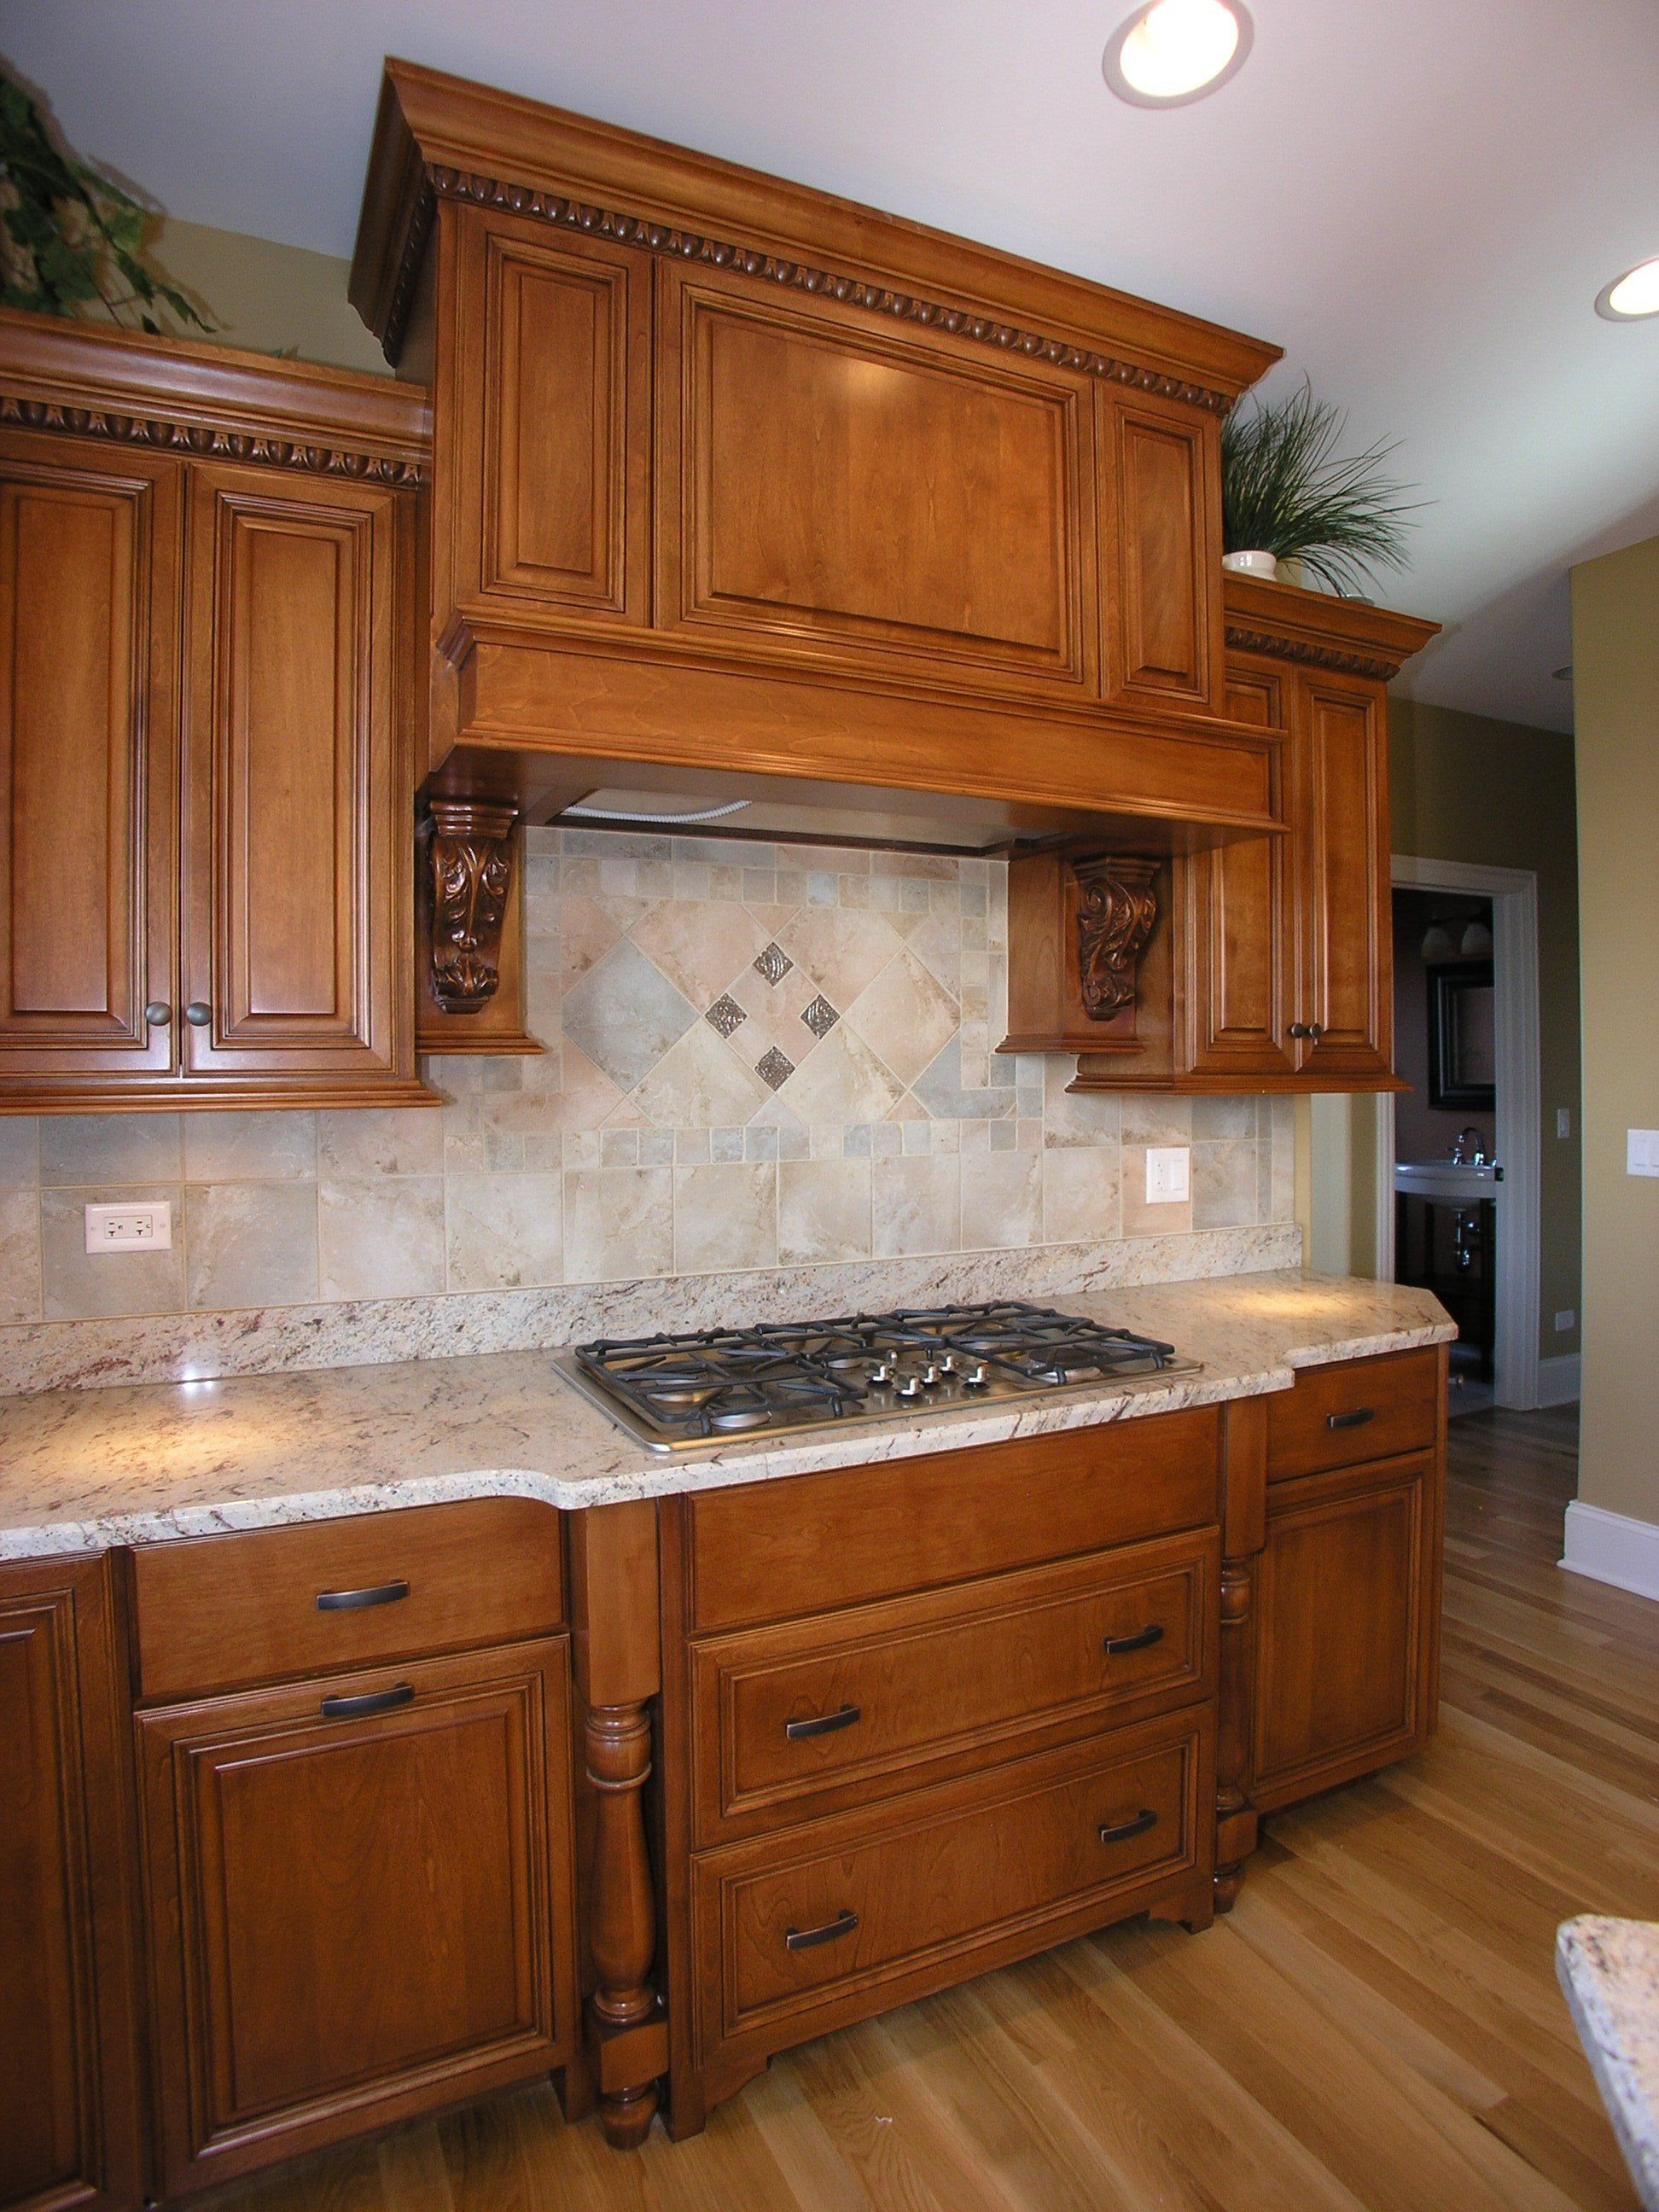 Custom Cabinets, Tile Backsplash And Gas Cooktop Adorn This Beauty